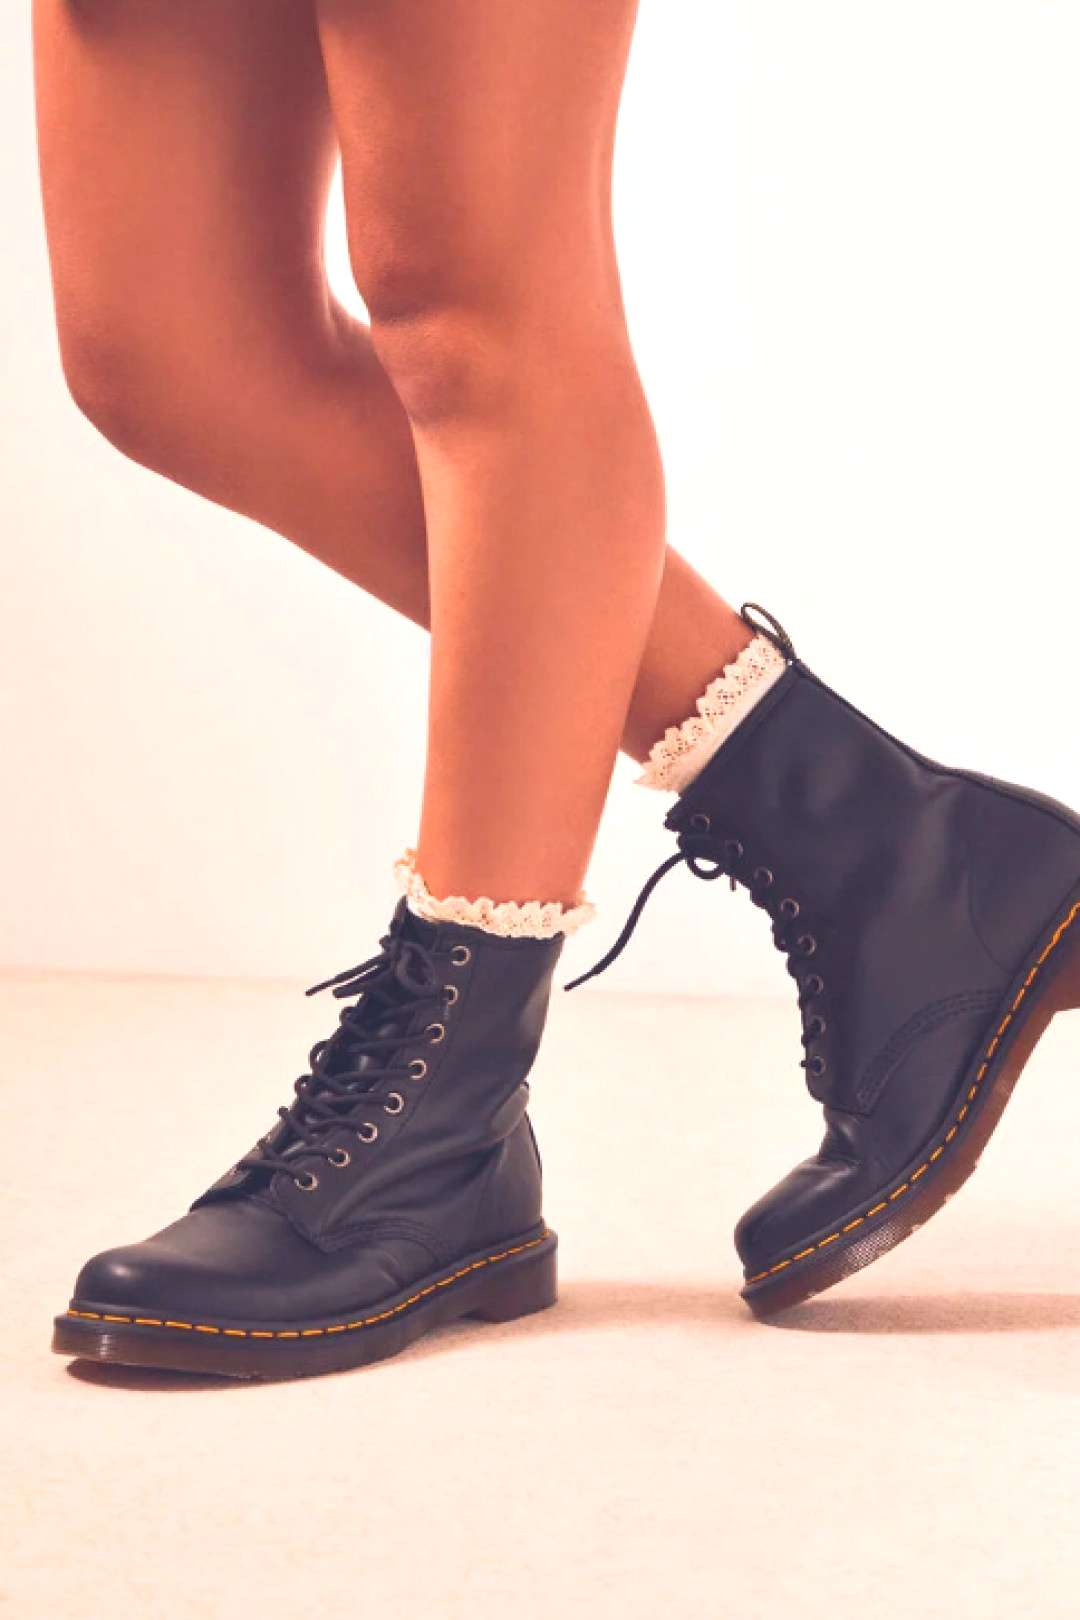 Dr Martens Black Nappa Leather Boots Dr Martens Black Nappa Leather Boots - Get ready to rock out